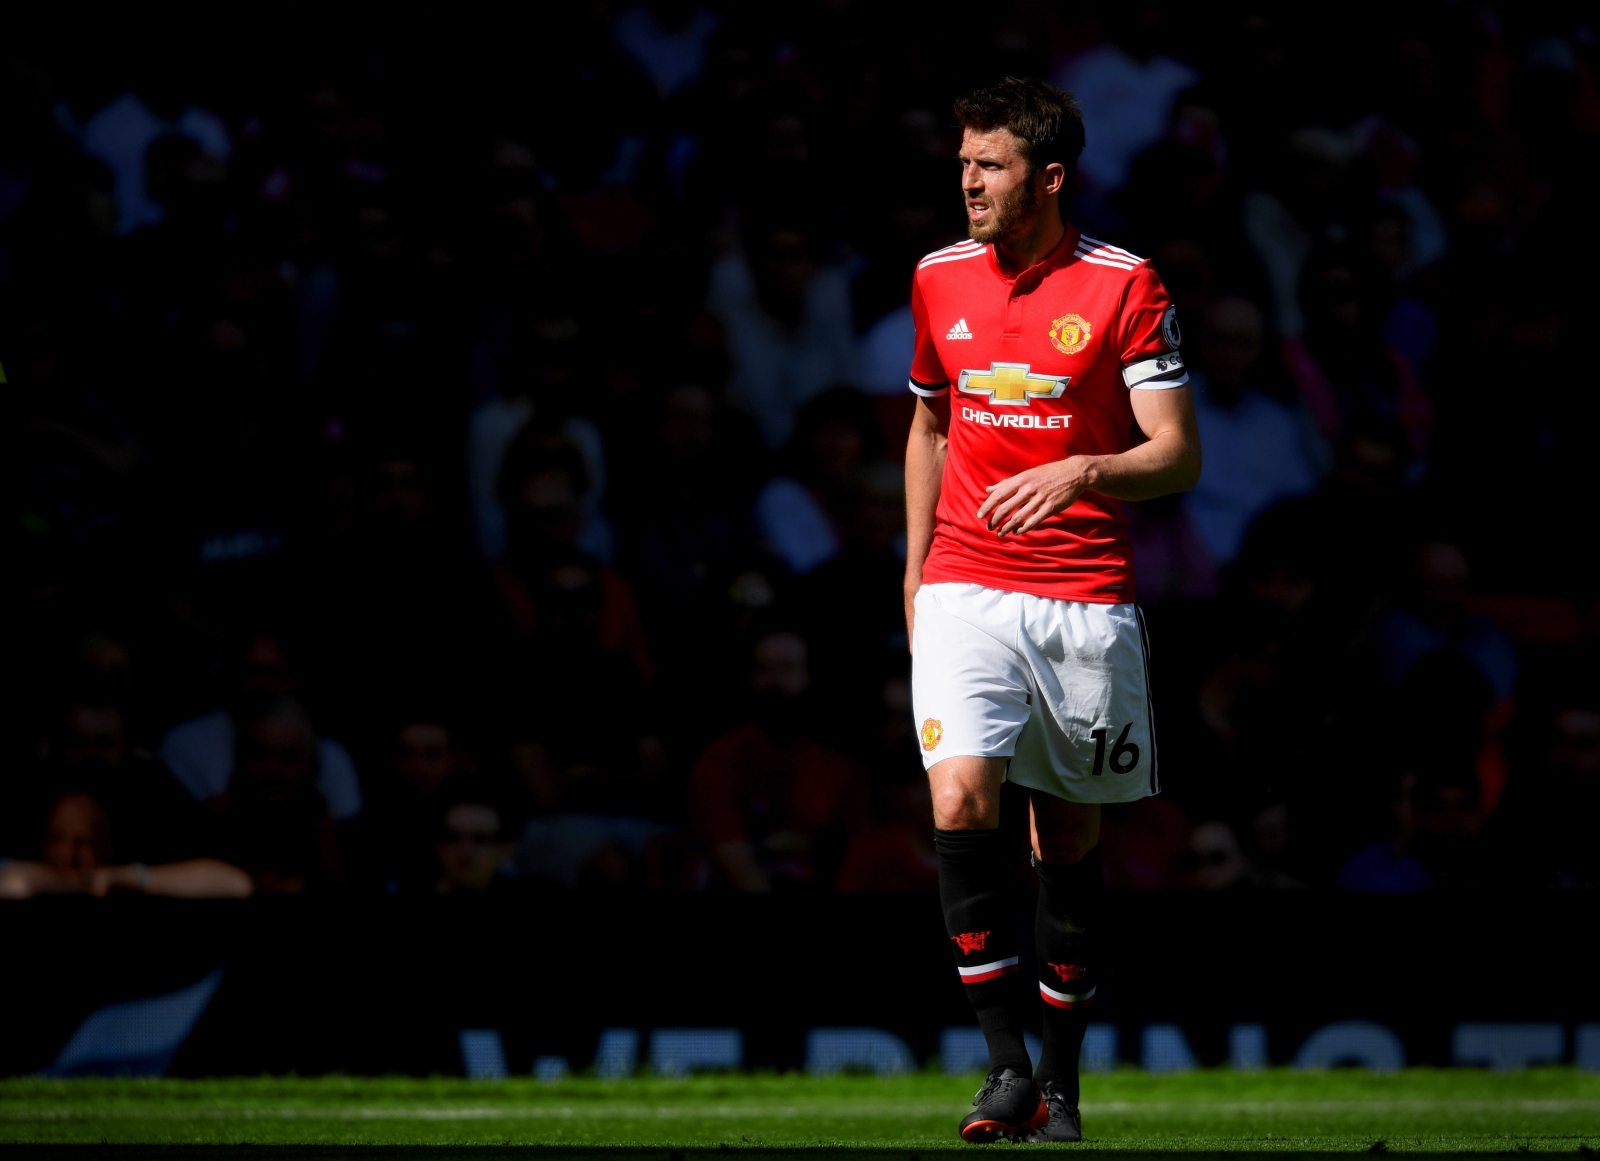 The outstanding talent of Owen Hargreaves and the dread of injuries